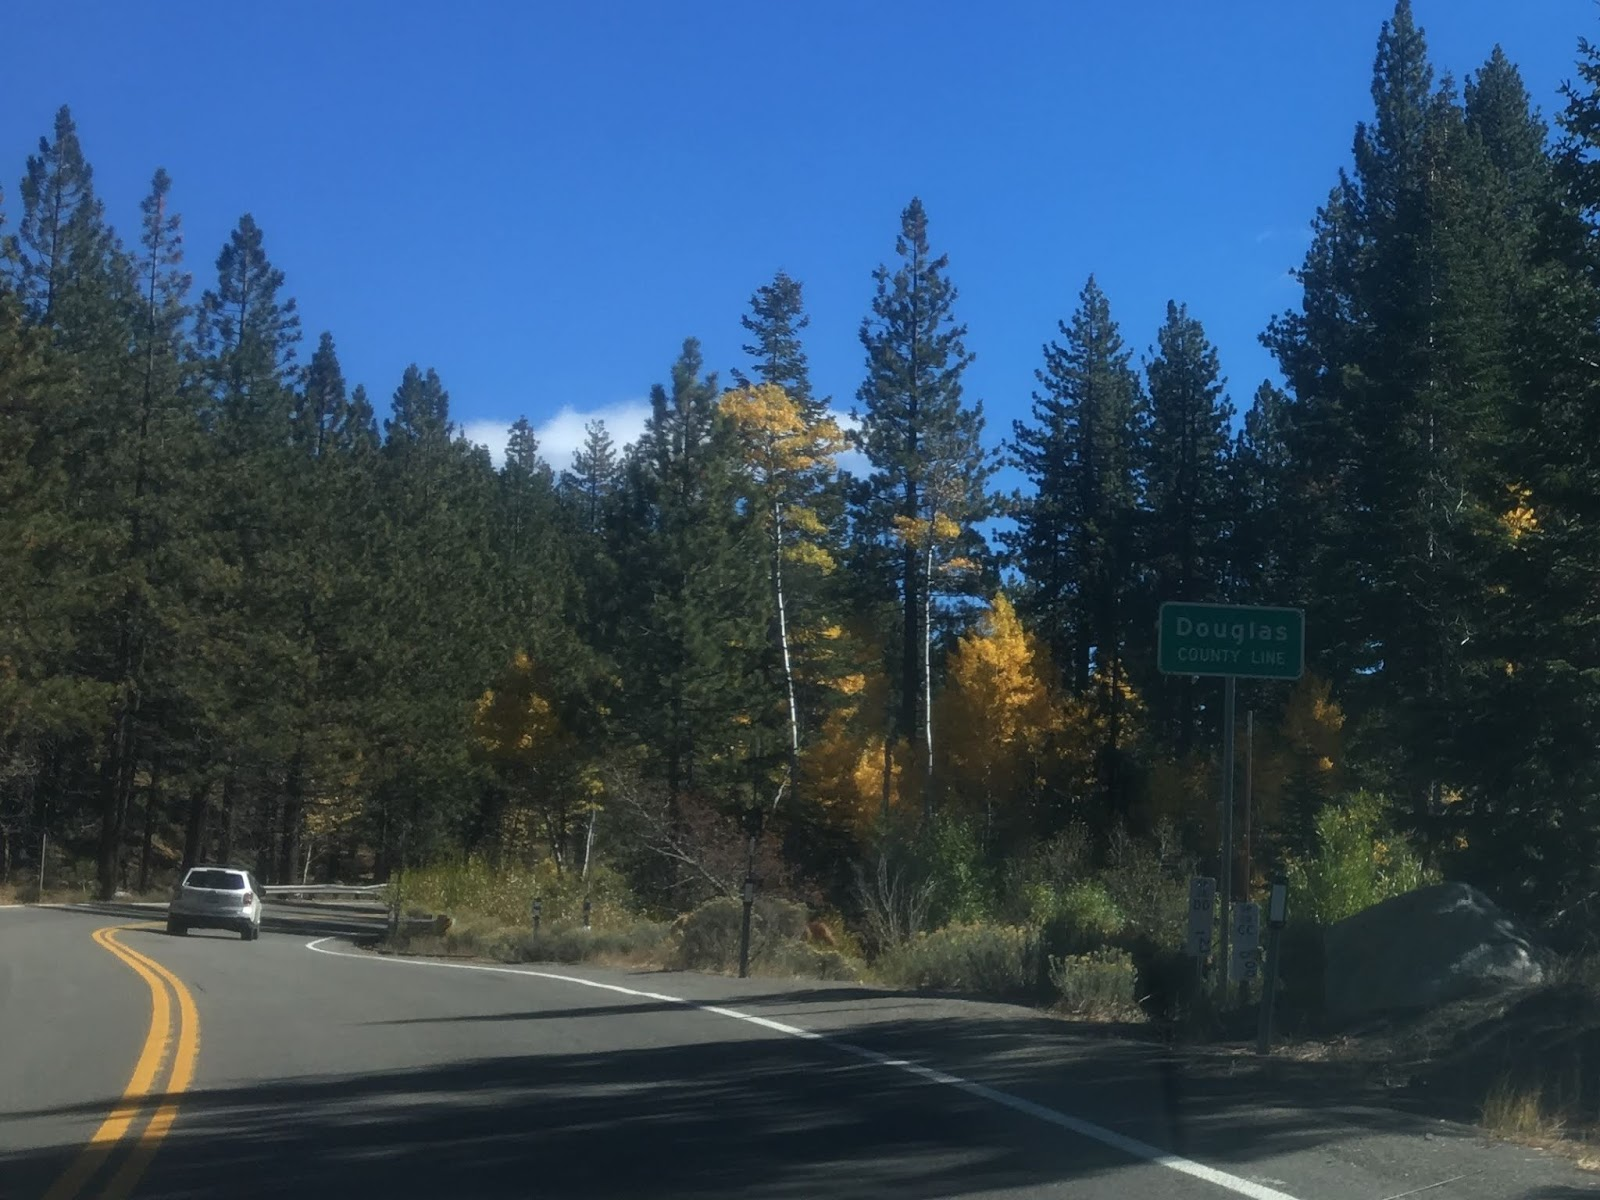 nv 28 passes by the spooner lake district of lake tahoe state park before it terminates at us 50 i turned westbound on us 50 headed back towards california